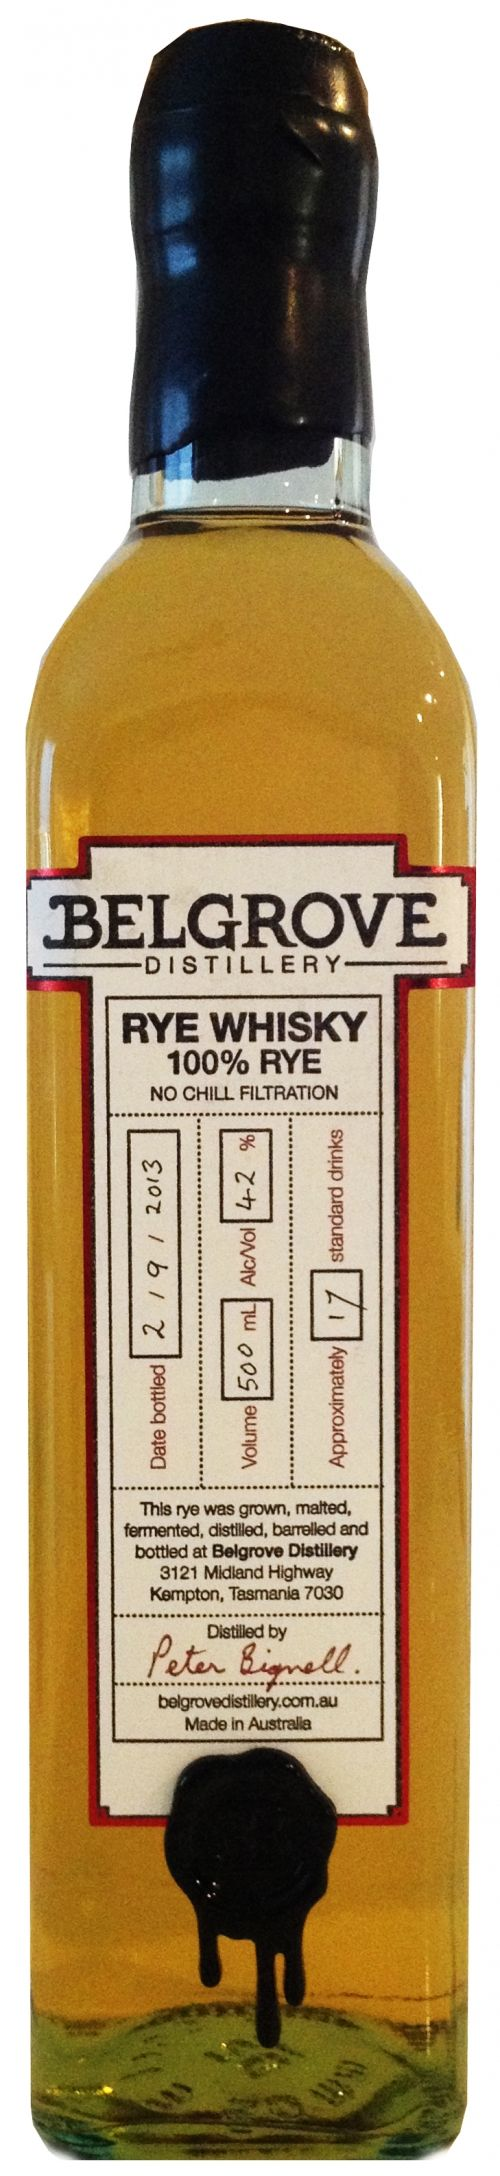 The Belgrove Distillery is the only Rye Distillery in Australia. Located North of Hobart Belgrove Distillery is THE ONLY BIODIESEL POWERED S...